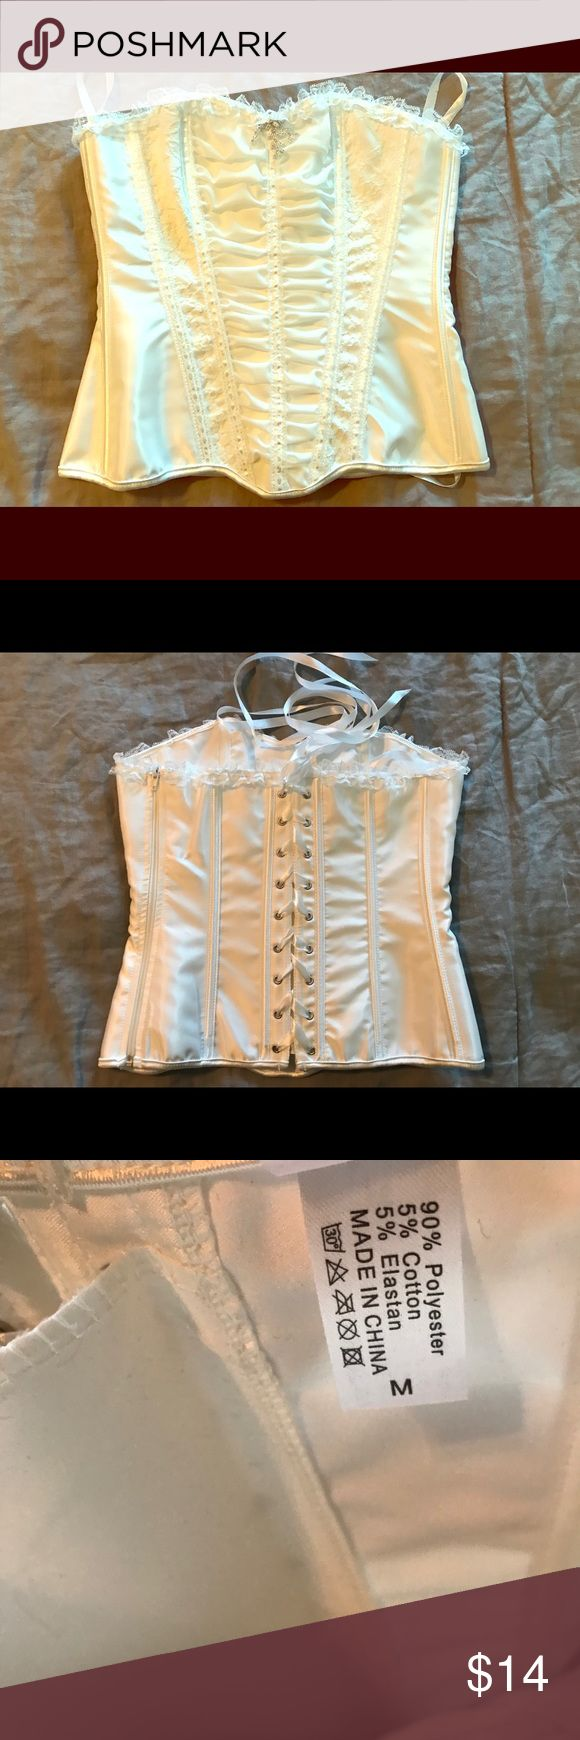 Corset top Never been worn, white corset top Tops